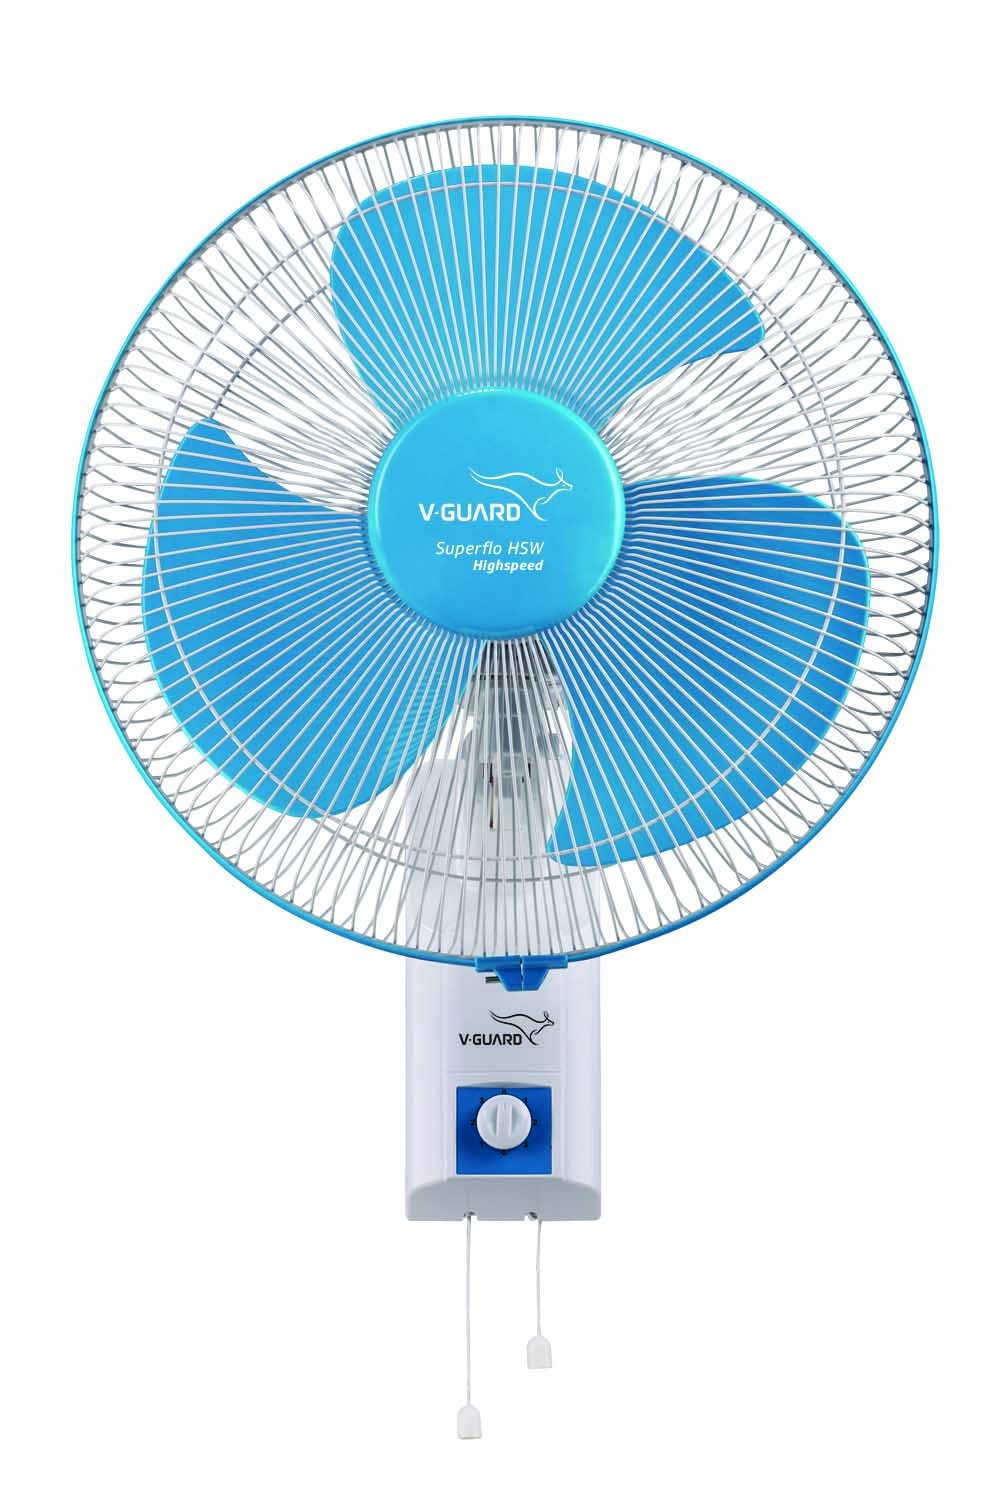 V-Guard Wall Fan Superflo High Speed- White Blue Sweep (300mm)